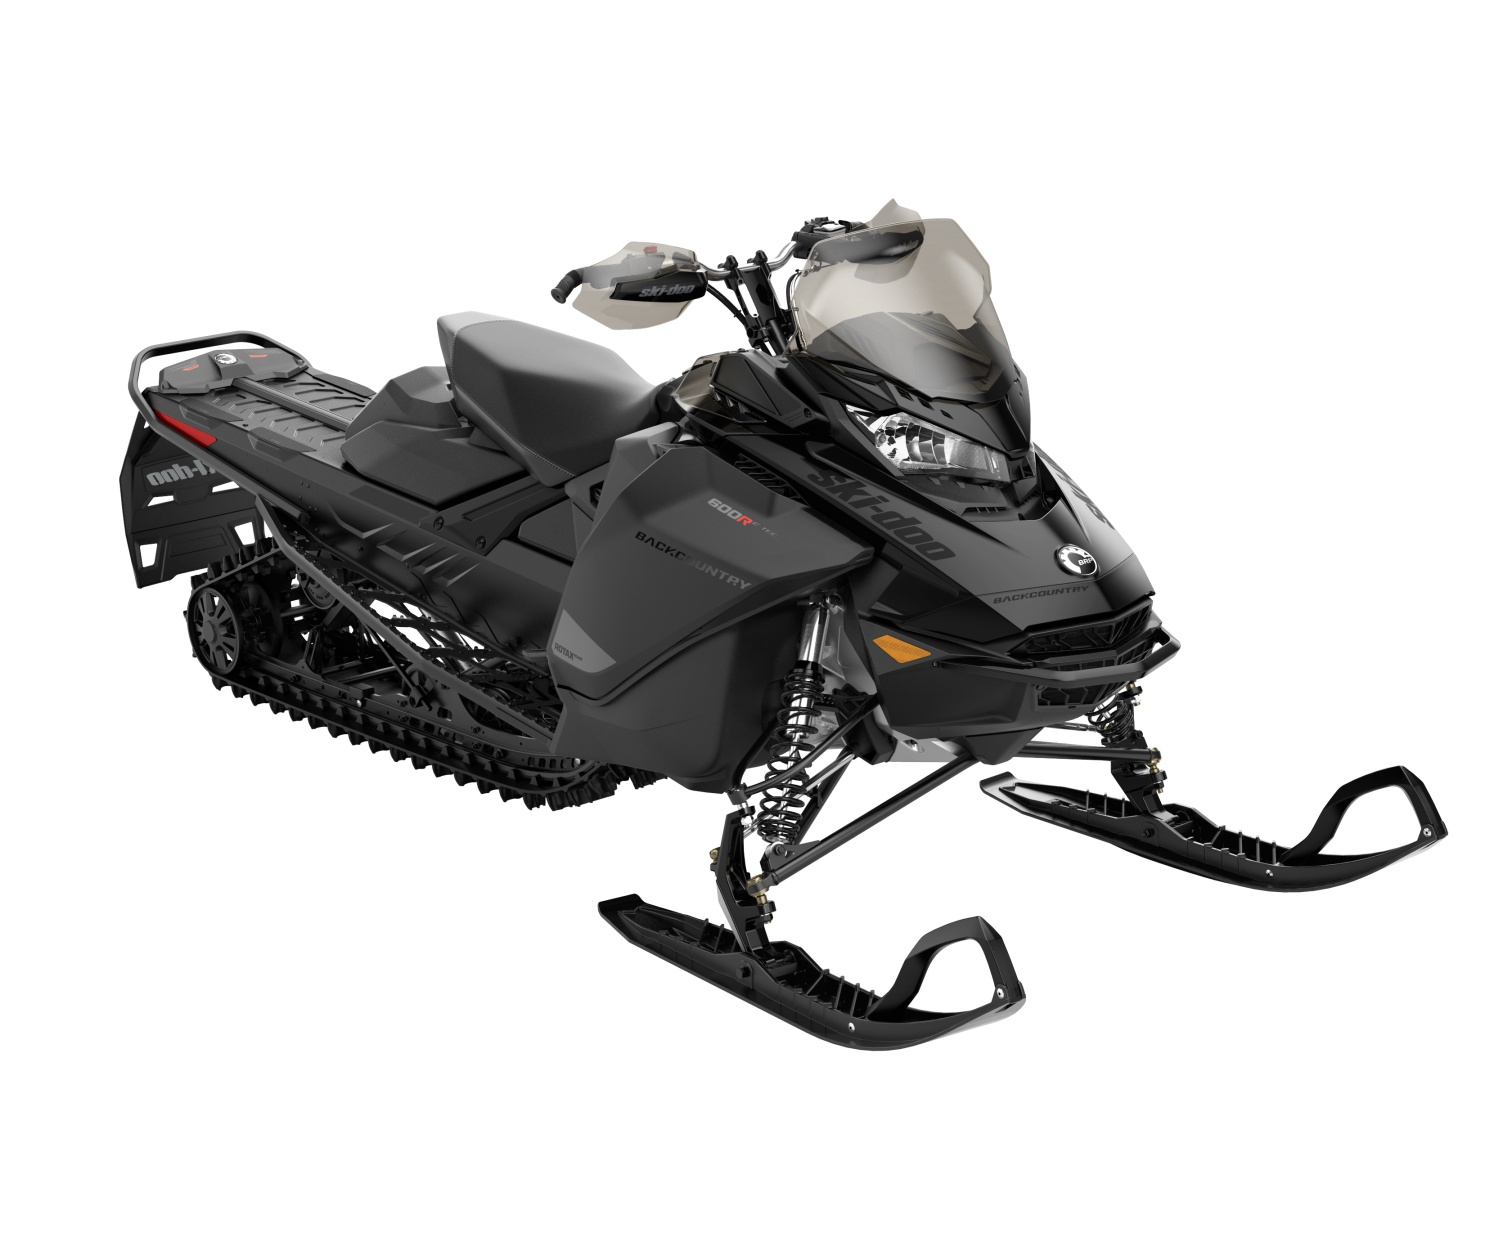 Ski-Doo backcountry 600r e-tec 2022